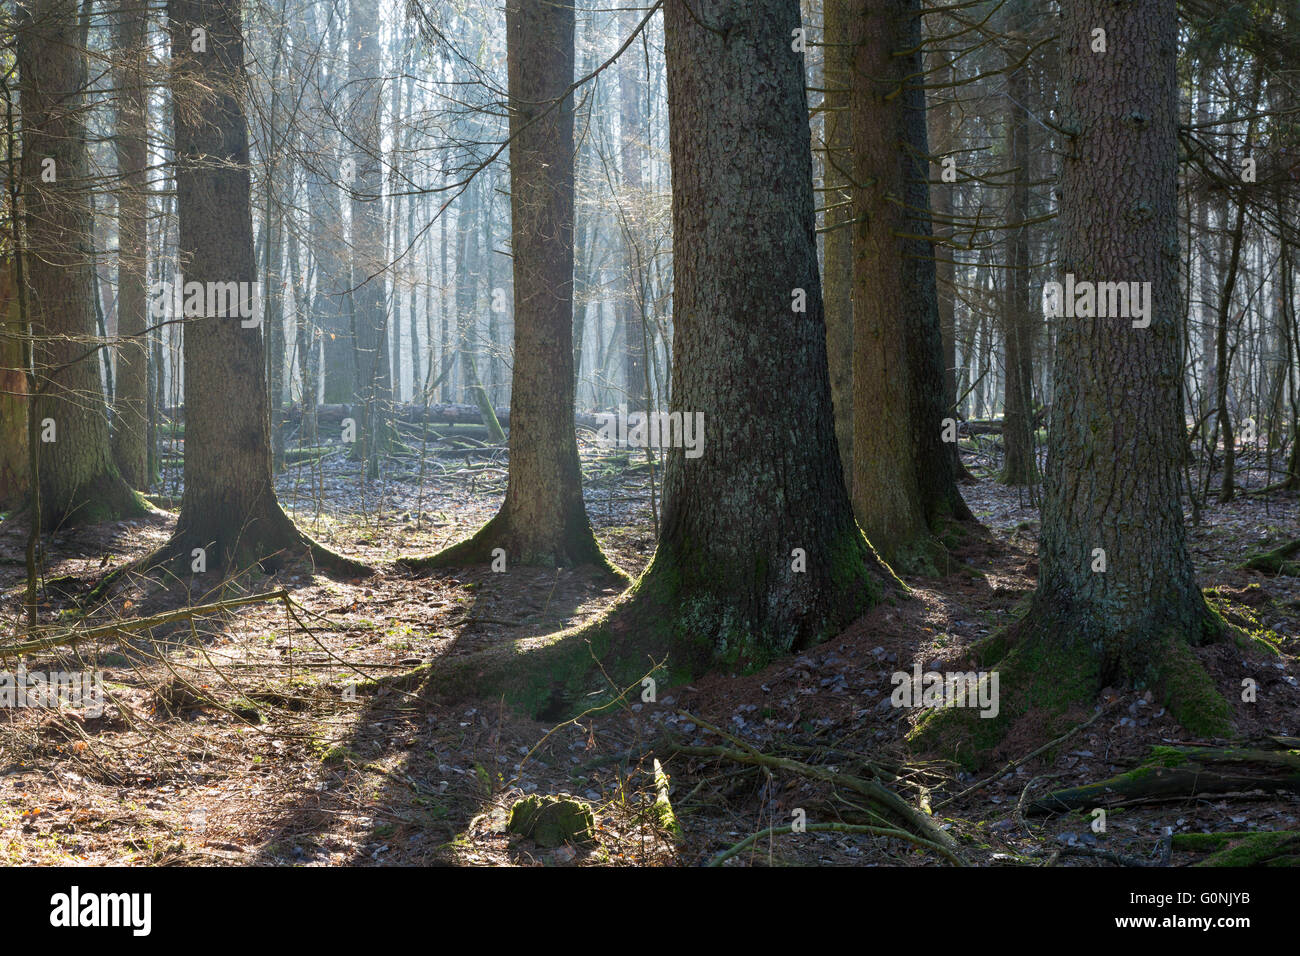 Coniferous stand in morning with old spruces some lying broken in background,Bialowieza Forest,Poland,Europe - Stock Image